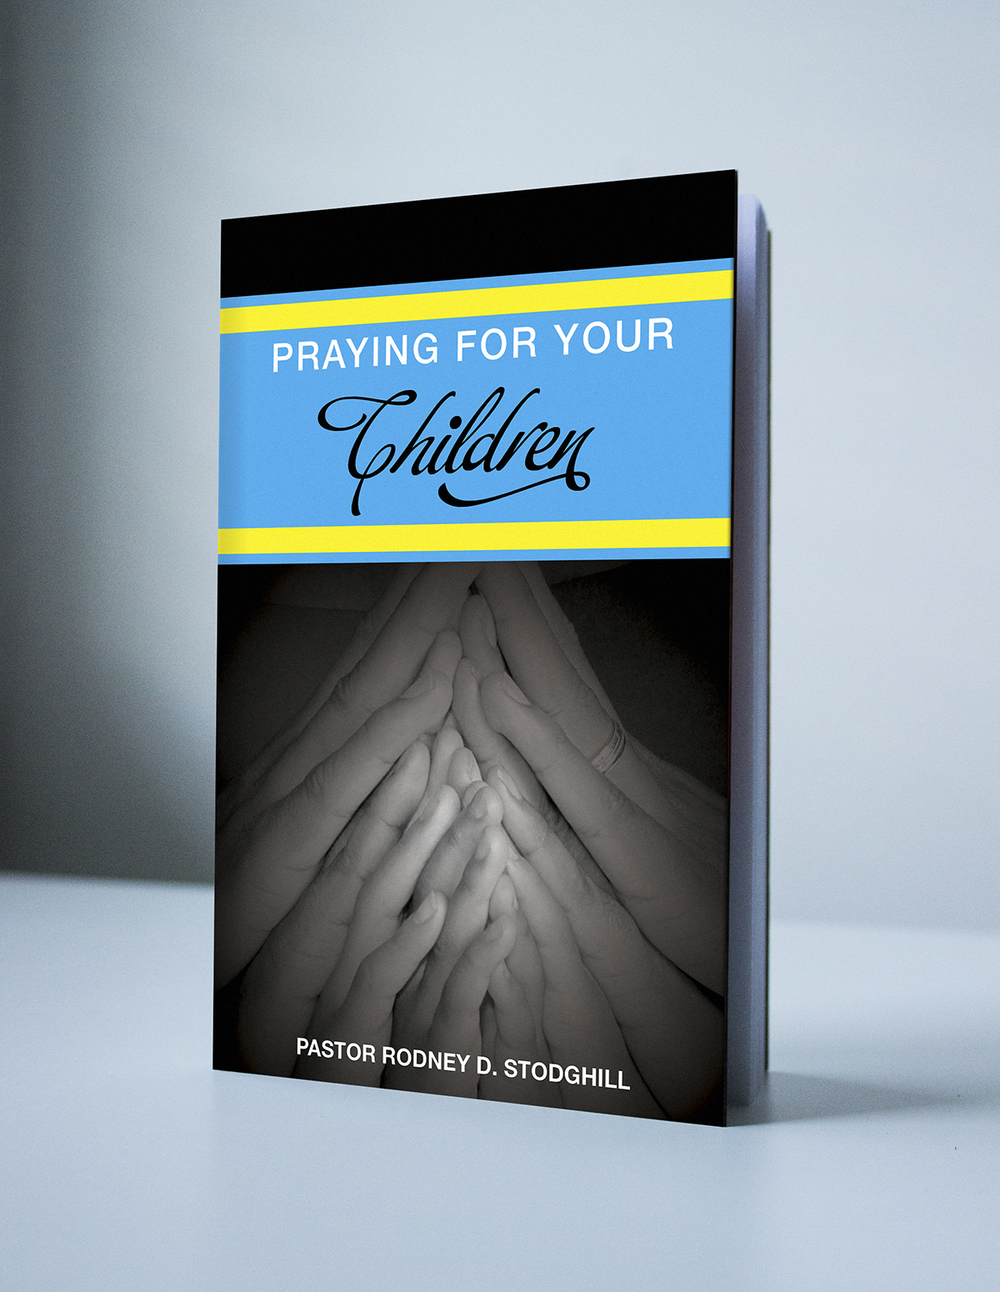 PRAYING FOR YOUR CHILDREN - PASTOR RODNEY D. STODGHILL